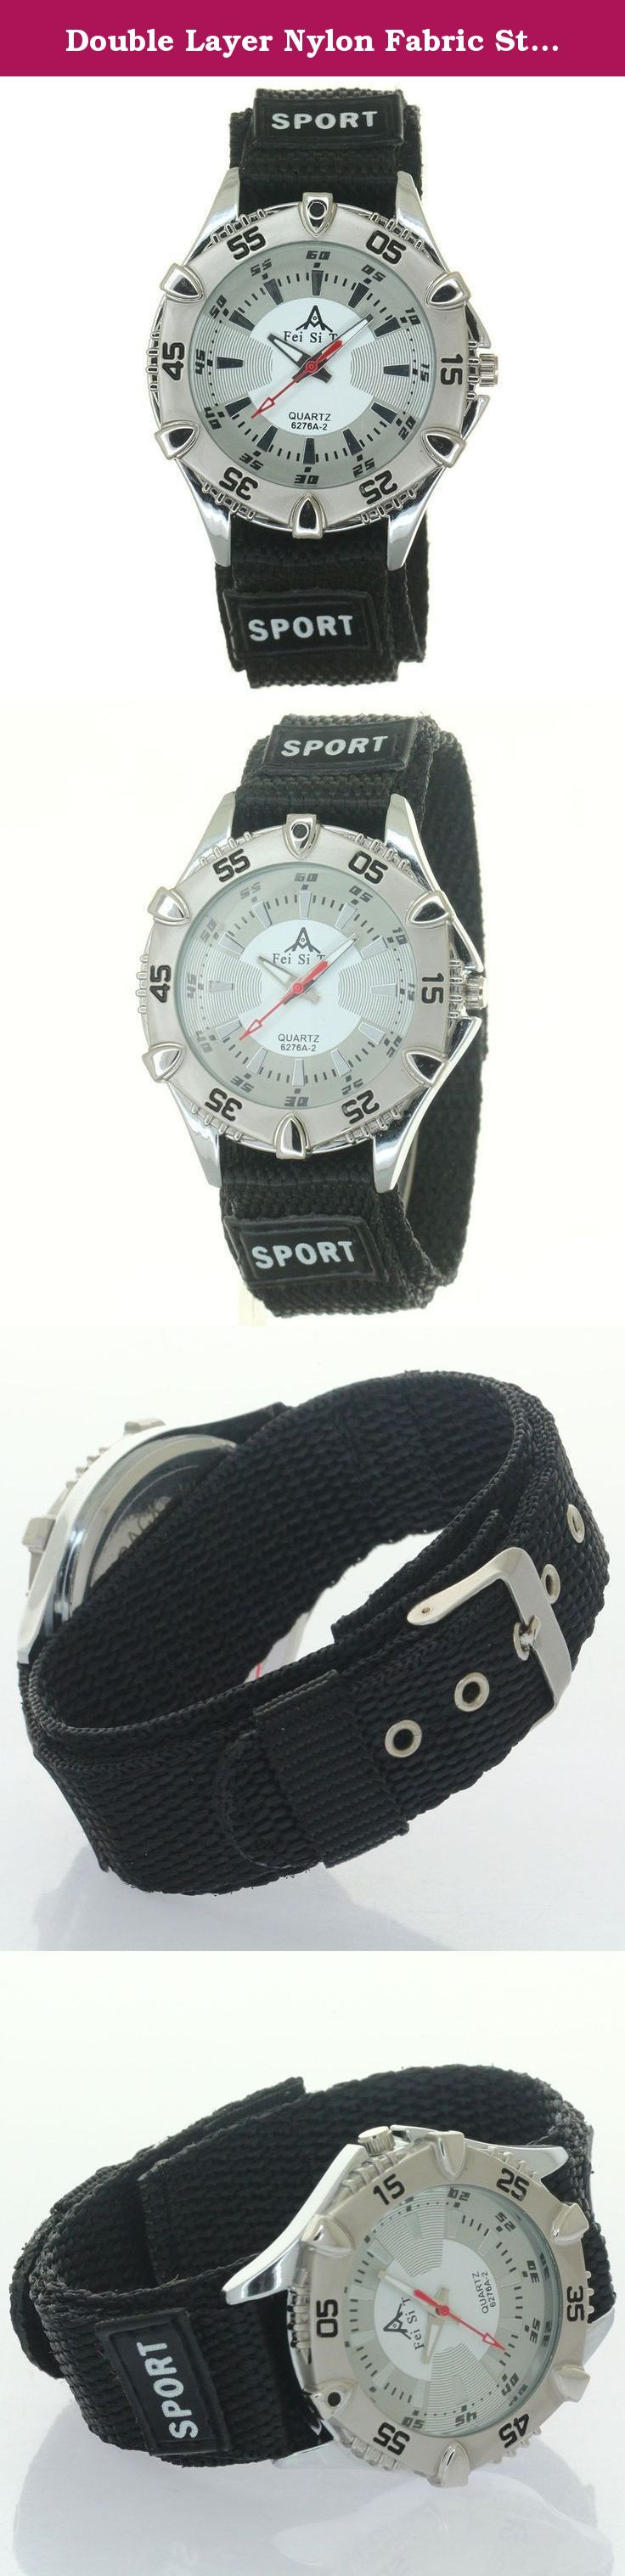 Double Layer Nylon Fabric Strap Velcro Fastener Polished Buckle Sport Quartz Unisex Bezel Wristwatch. Double Layer Nylon Watch Strap Velcro Fastener Polished Buckle Functional uni-direction bezel crown Decorate Numeral Dial Japan Precision Movement Inside. Quartz Wristwatch. Short straps not fit strong big wrists. Men Women Boys Girls Kids Students all Fits.